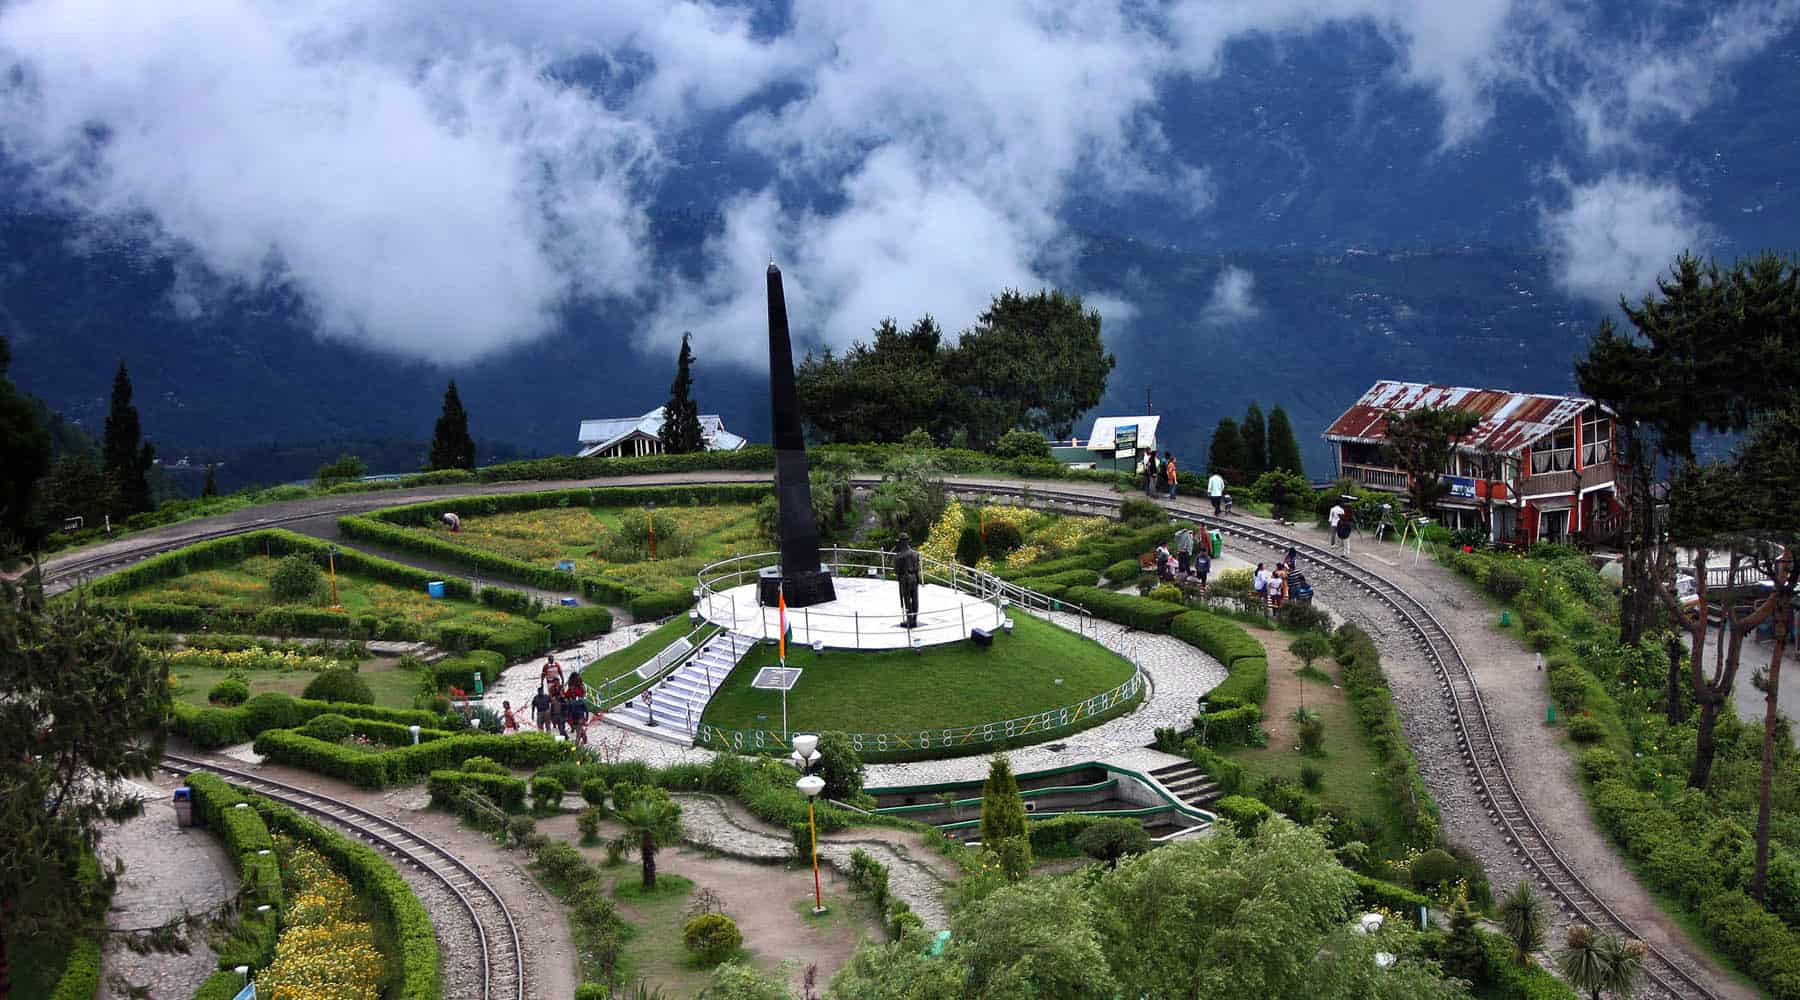 Darjeeling Is The Famous Hill Station Place To Visit In India